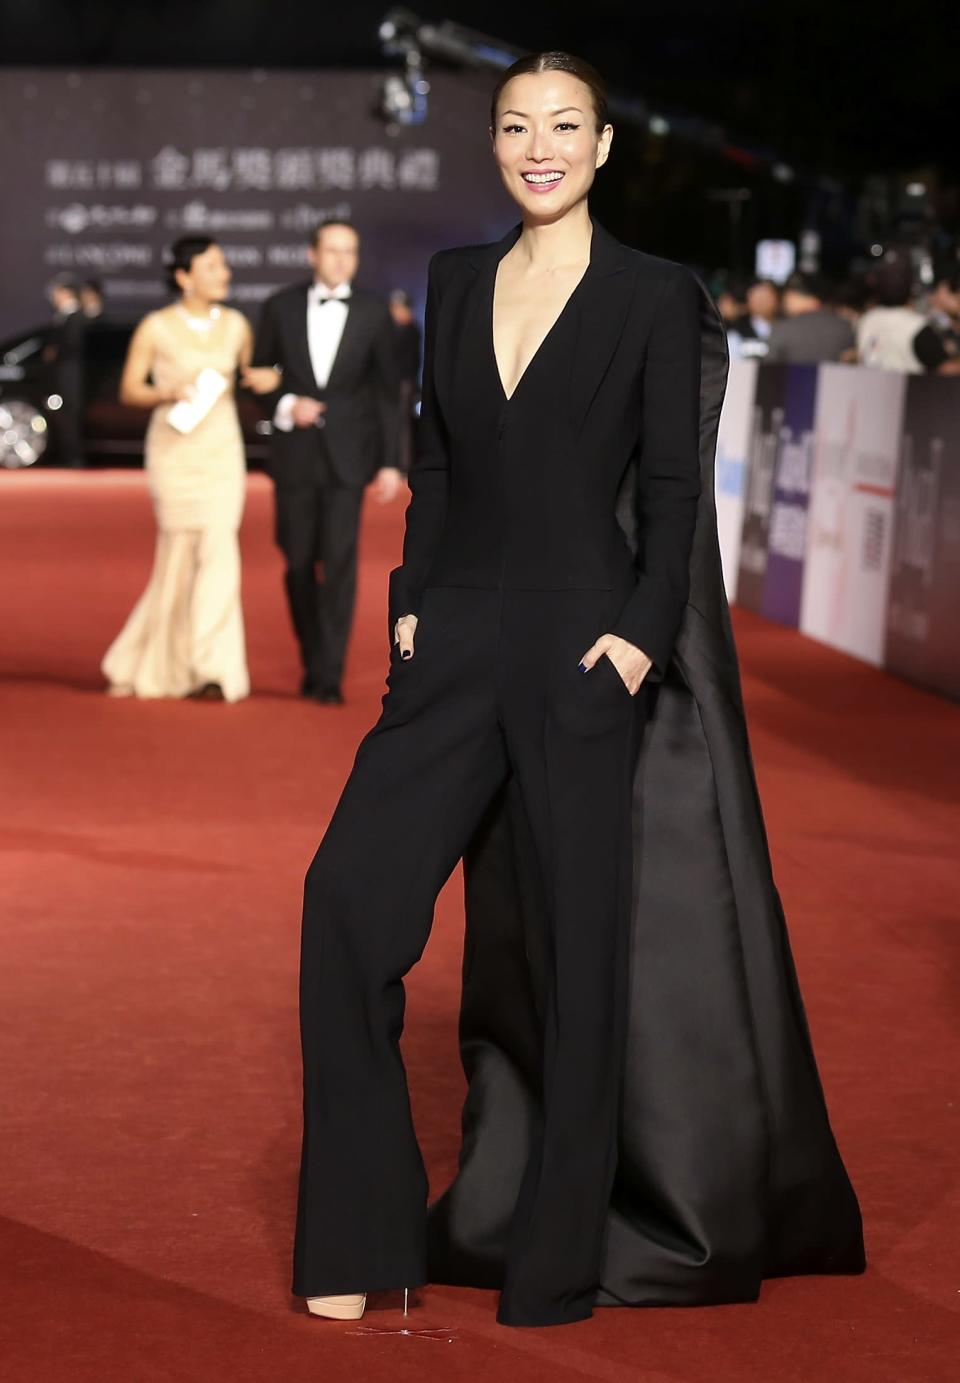 Hong Kong actress and singer Sammi Cheng poses for photographers on the red carpet at the 50th Golden Horse Film Awards in Taipei November 23, 2013. REUTERS/Patrick Lin (TAIWAN - Tags: ENTERTAINMENT)